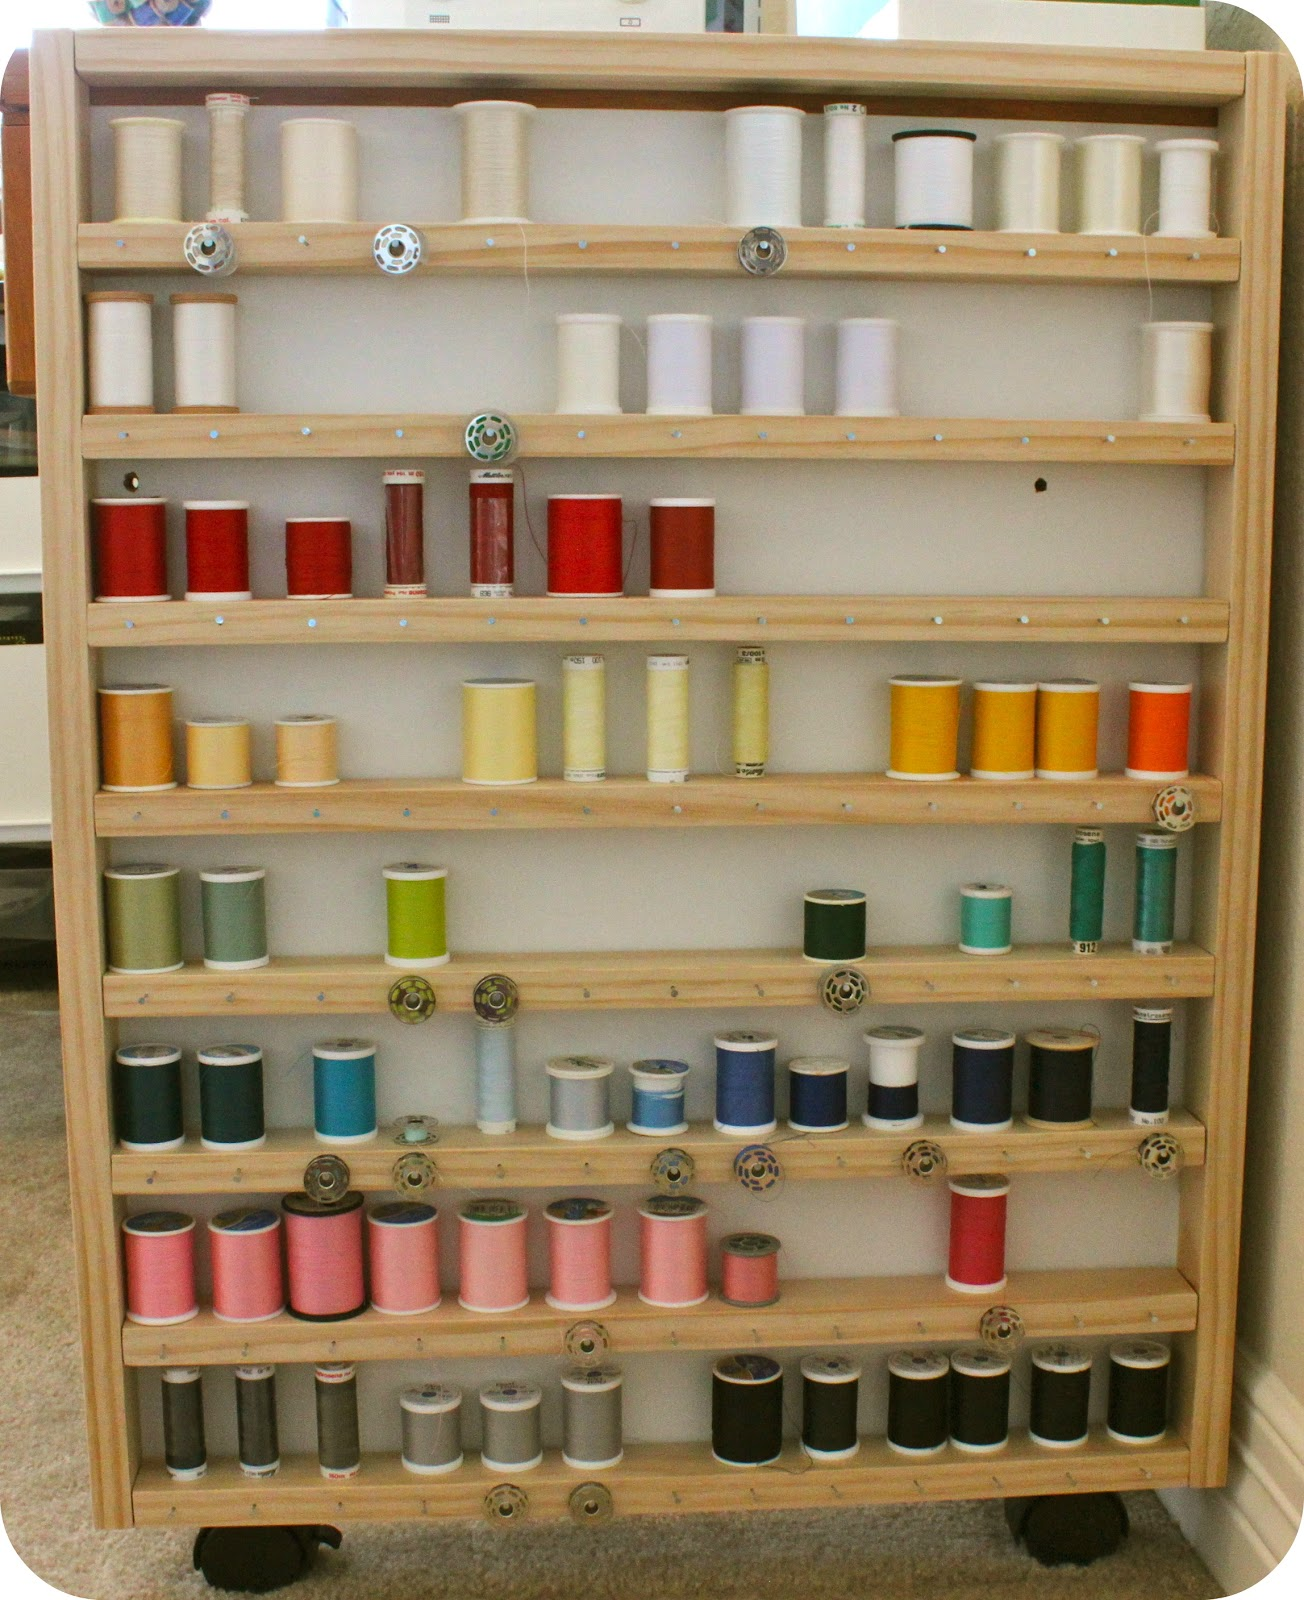 Crafters Wooden Sewing Thread Rack Plans Here